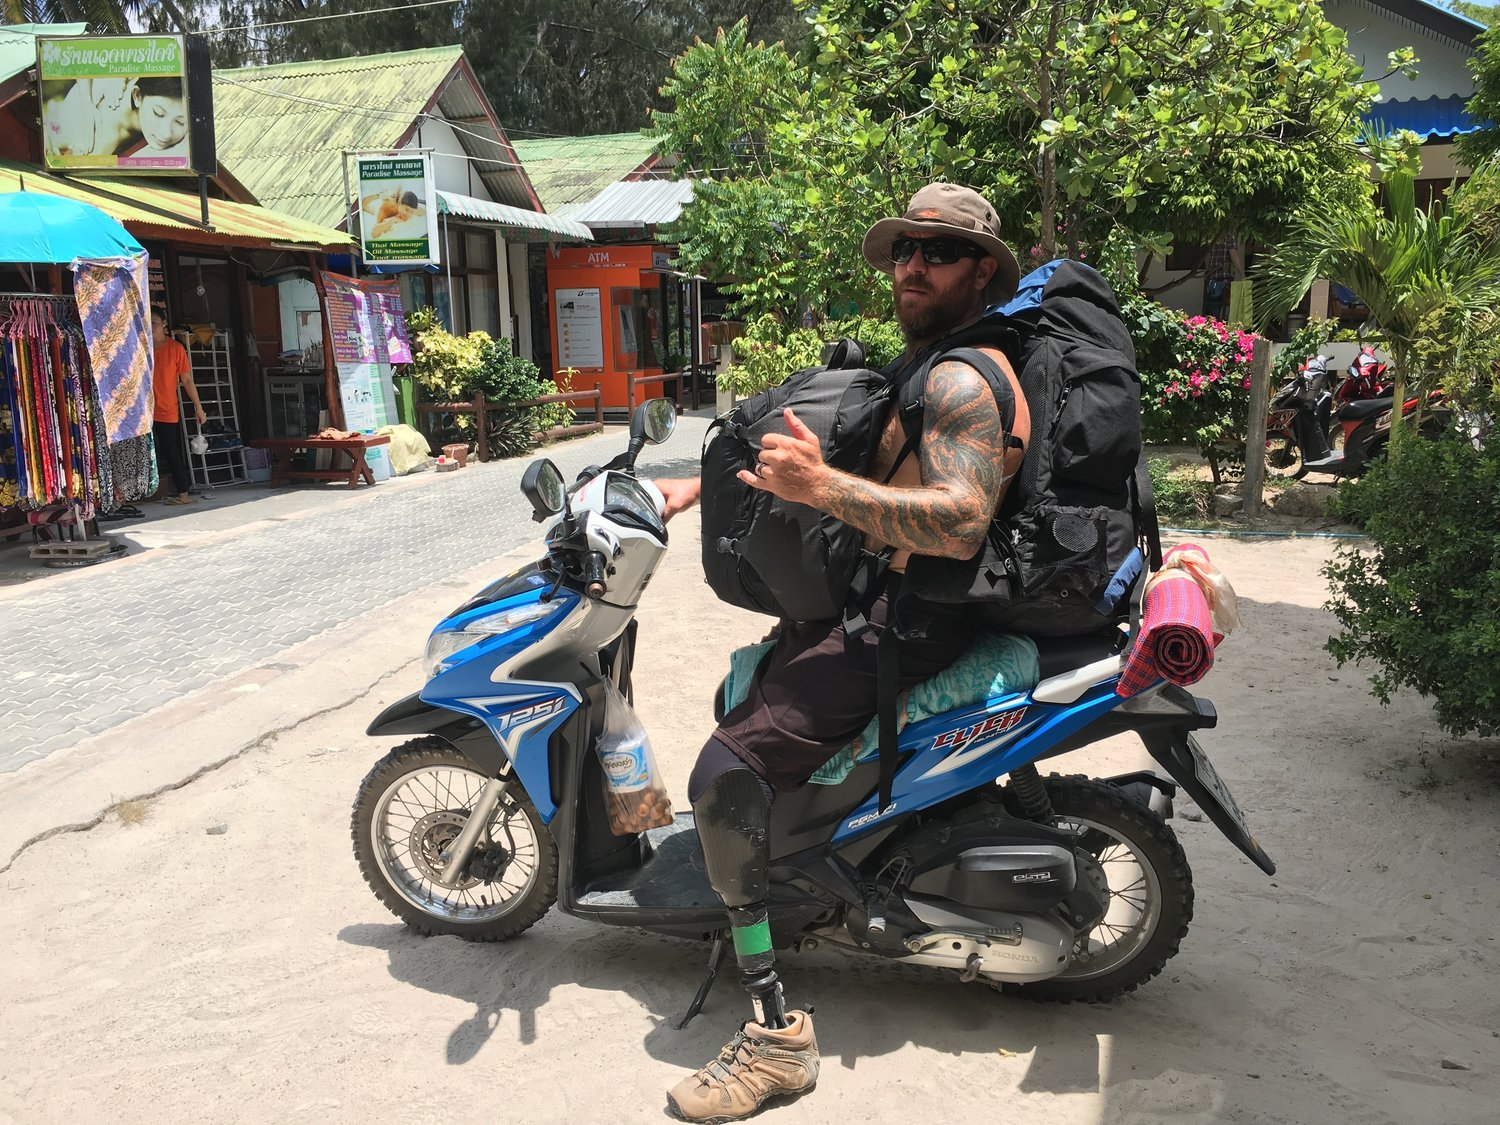 For half the price of a cab to transport your luggage to your hotel, in Thailand you can rent a motorbike for the whole day and transport it yourself.  Then go explore!  Score!